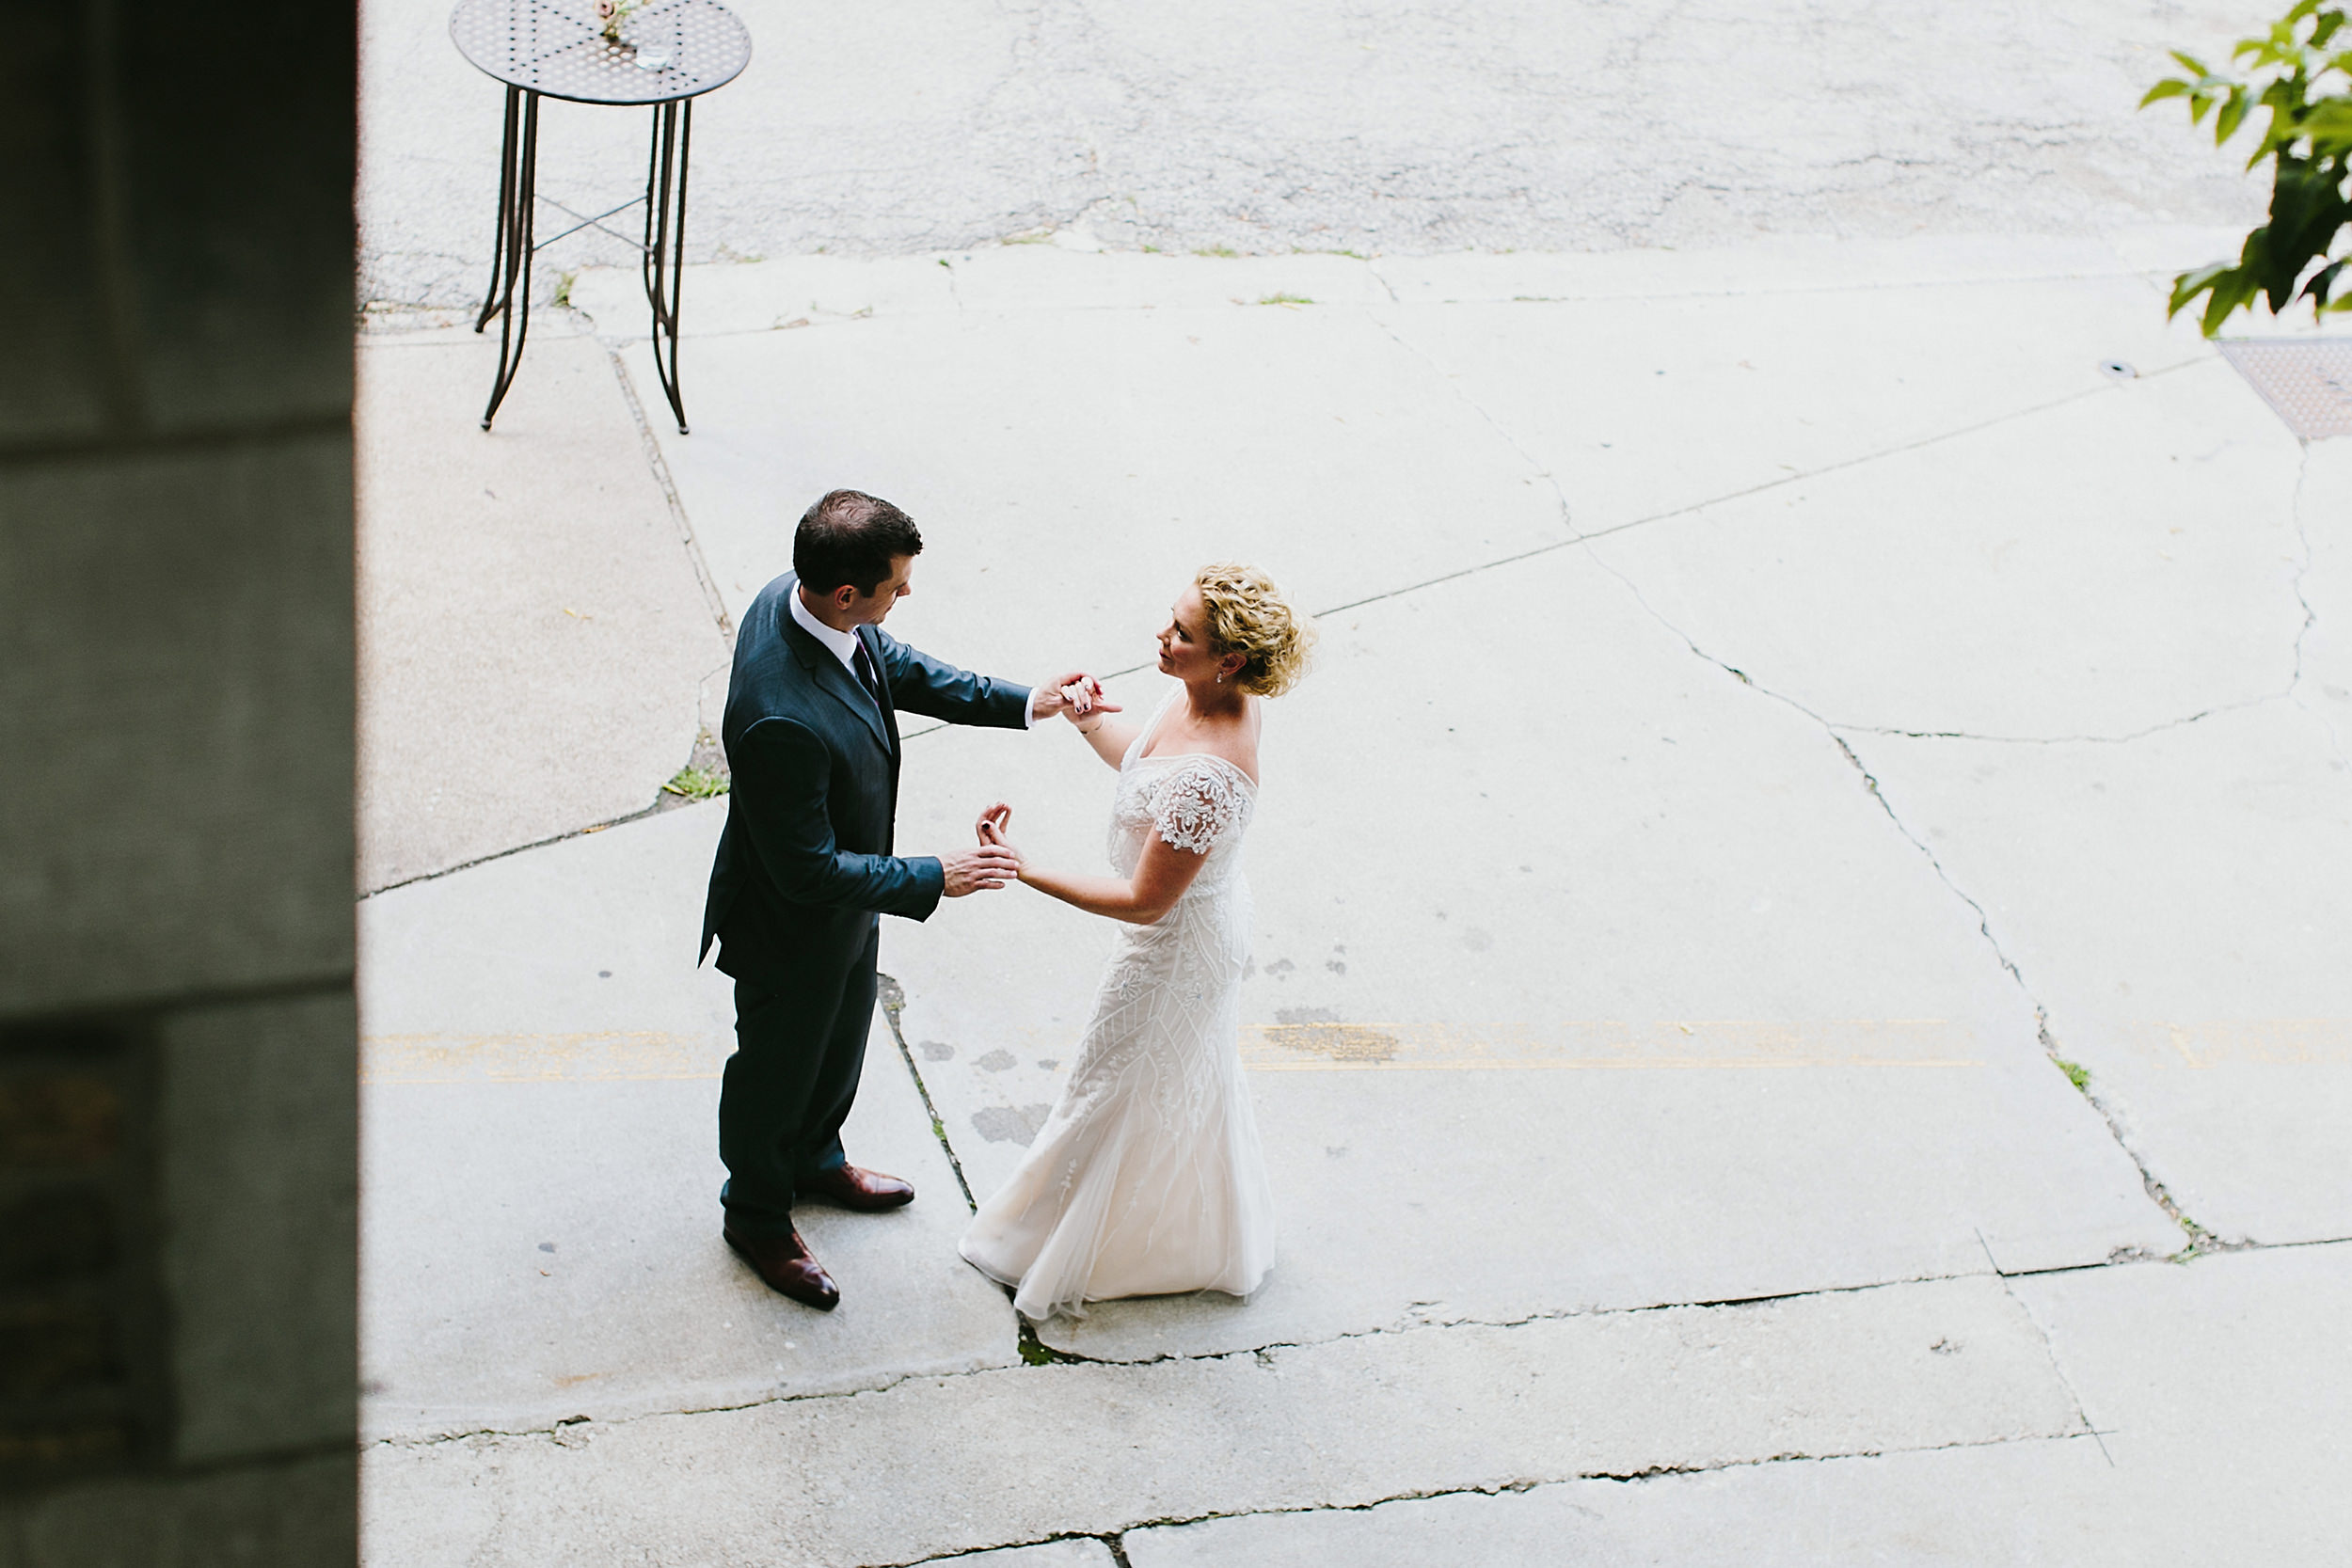 an intimate moment between the bride and the groom